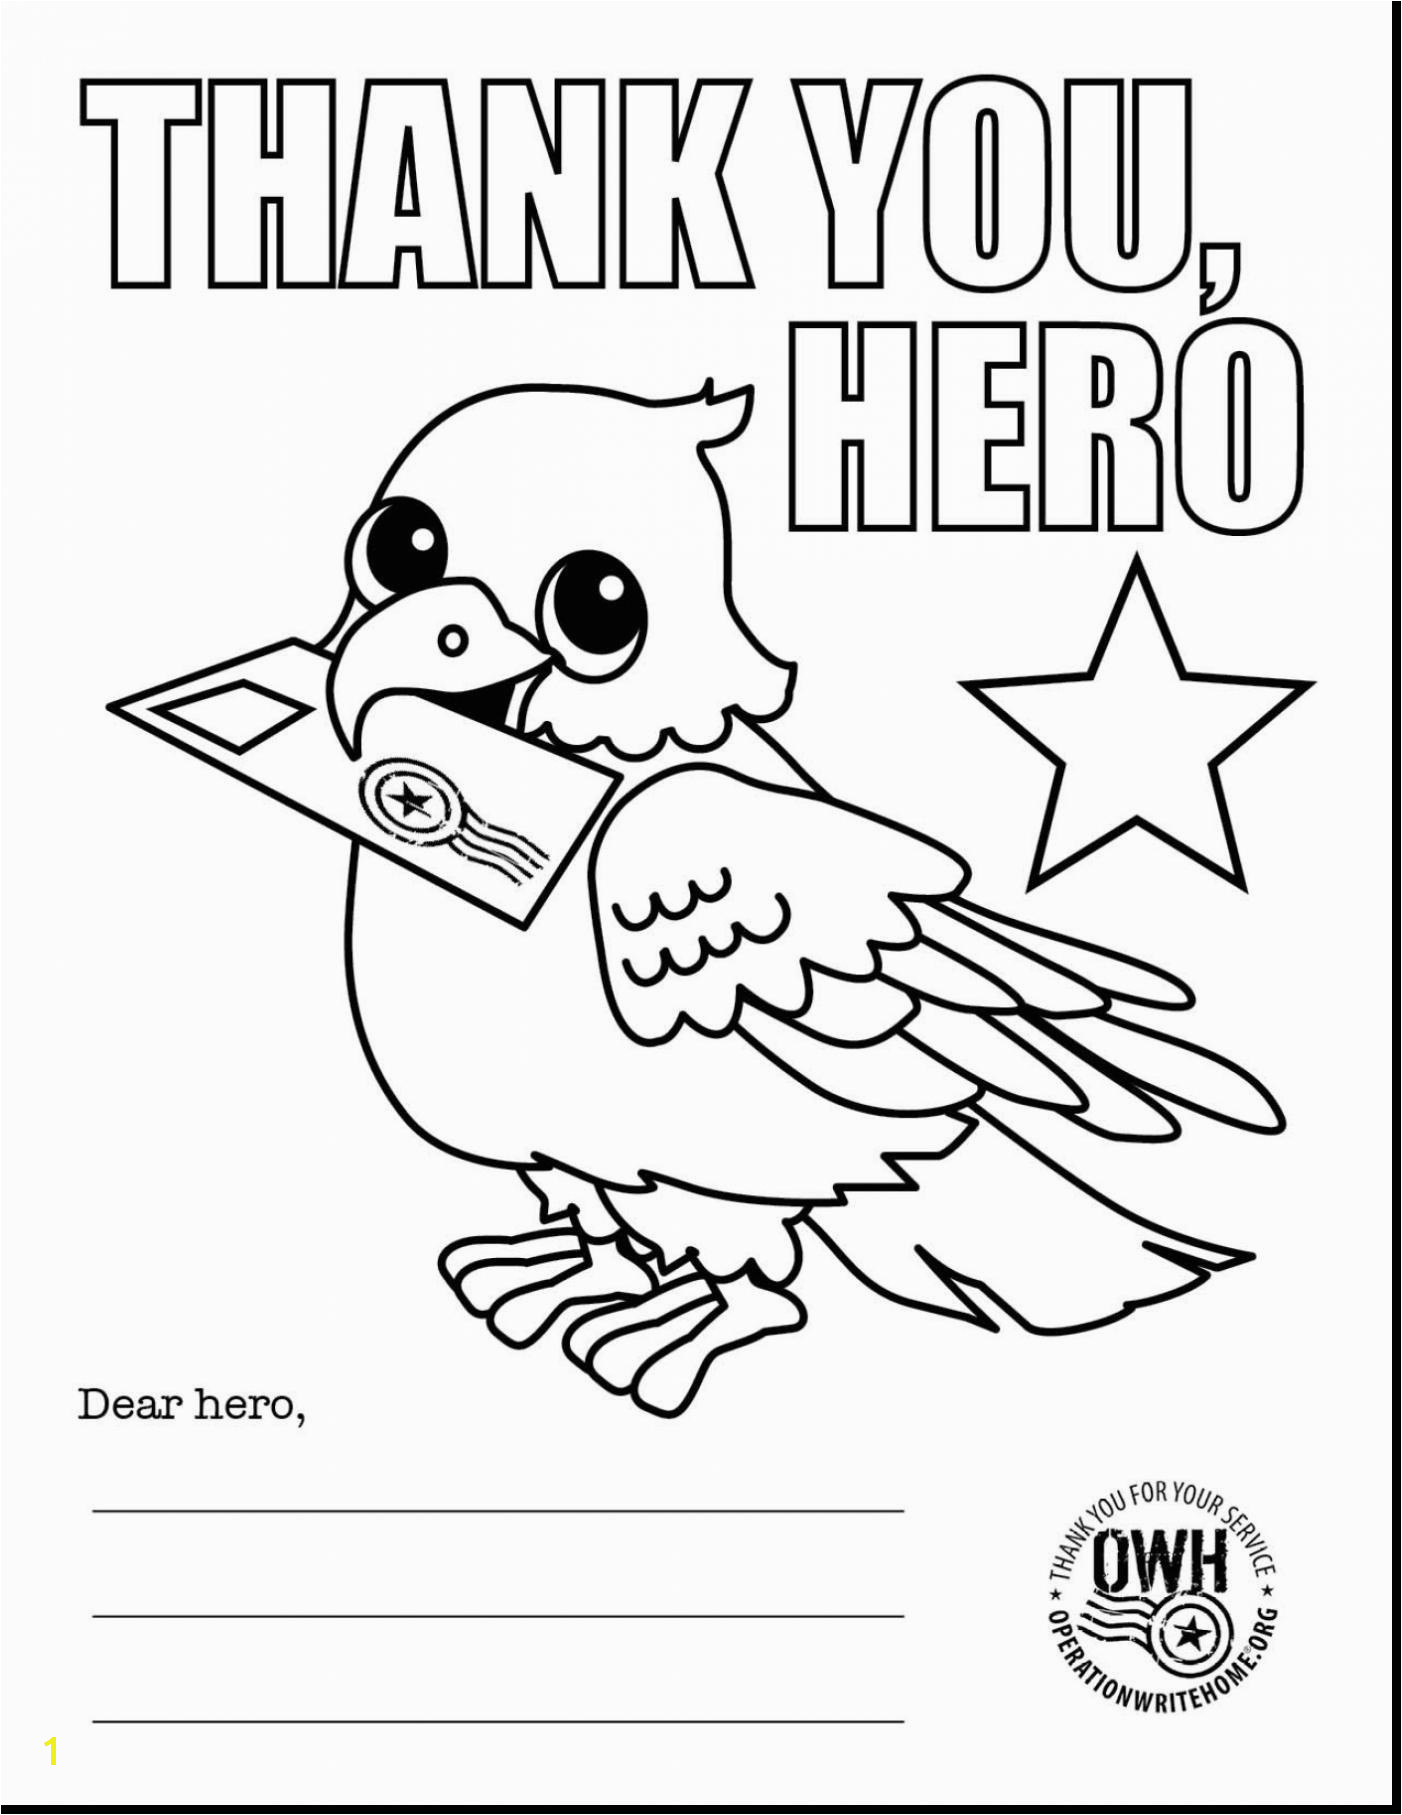 Thank You Coloring Pages Coloring Pages for Teachers Fresh Army Coloring Pages Luxury sol R